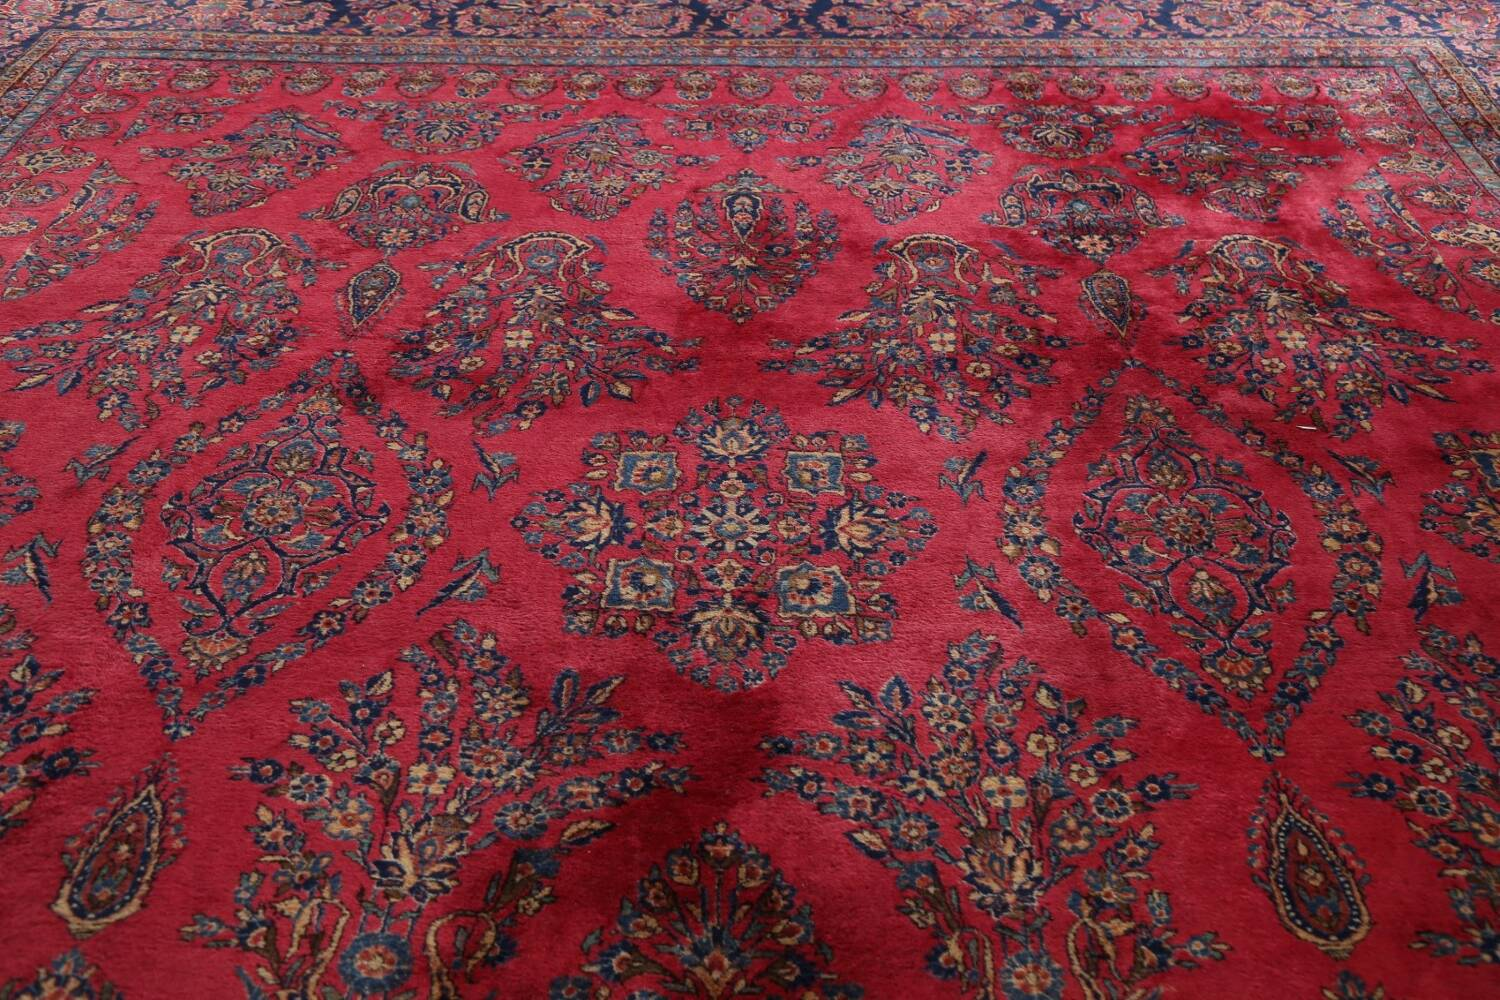 Antique 100% Vegetable Dye Kashan Persian Area Rug 12x20 image 12